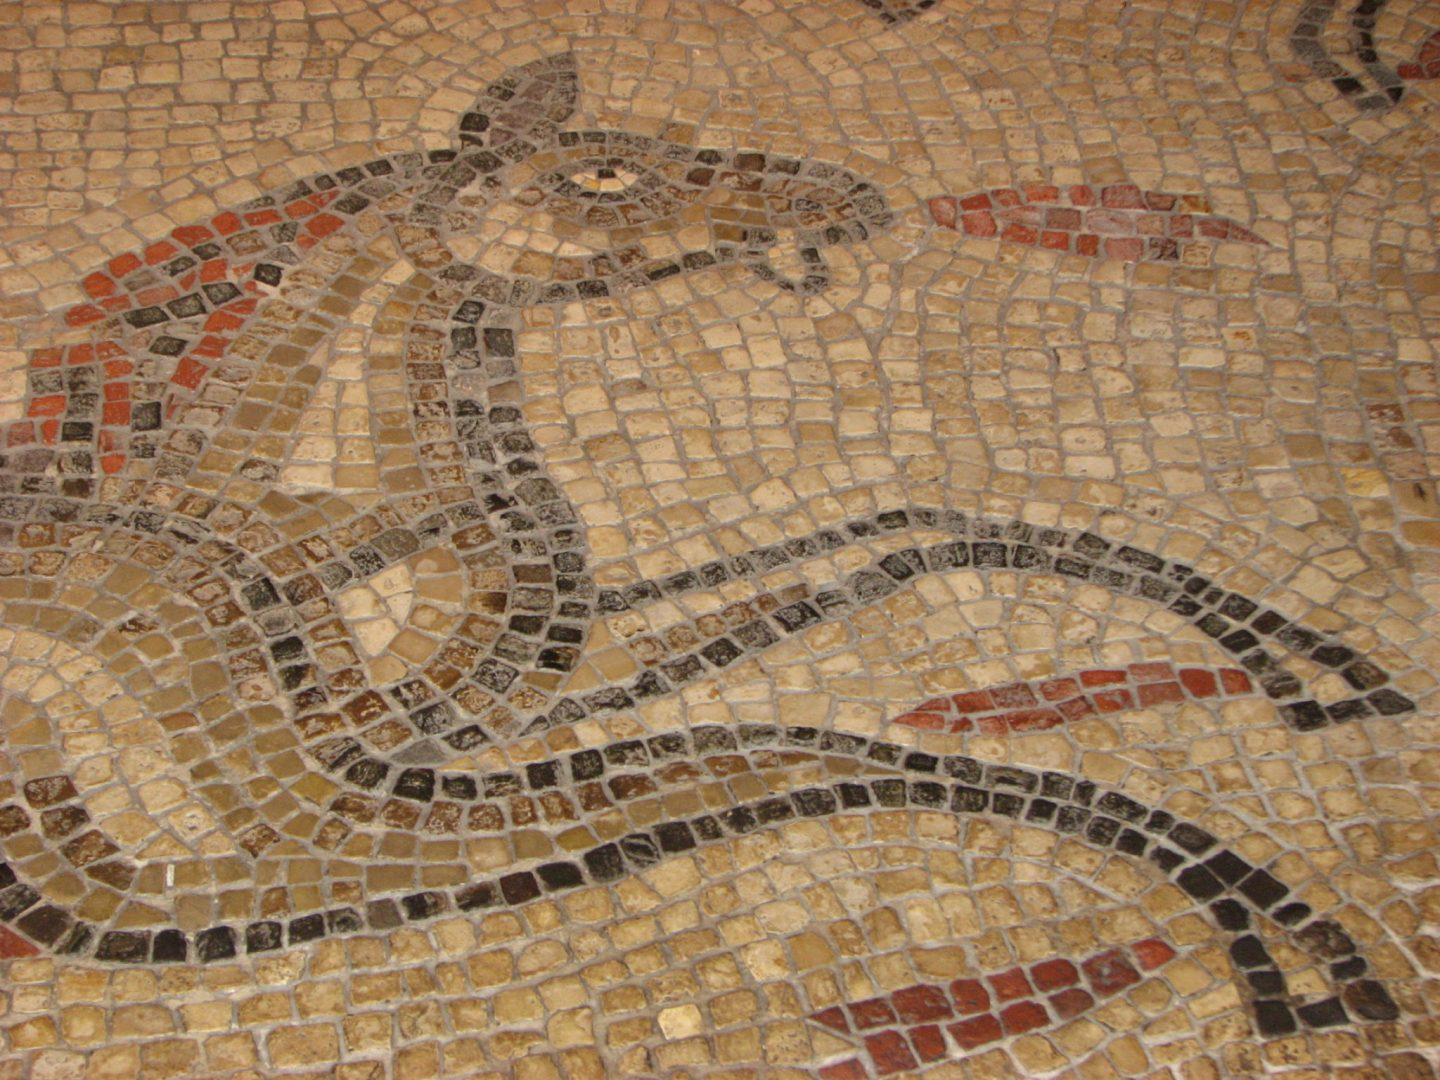 Mosaic of a horse at the Roman Baths, Bath, England